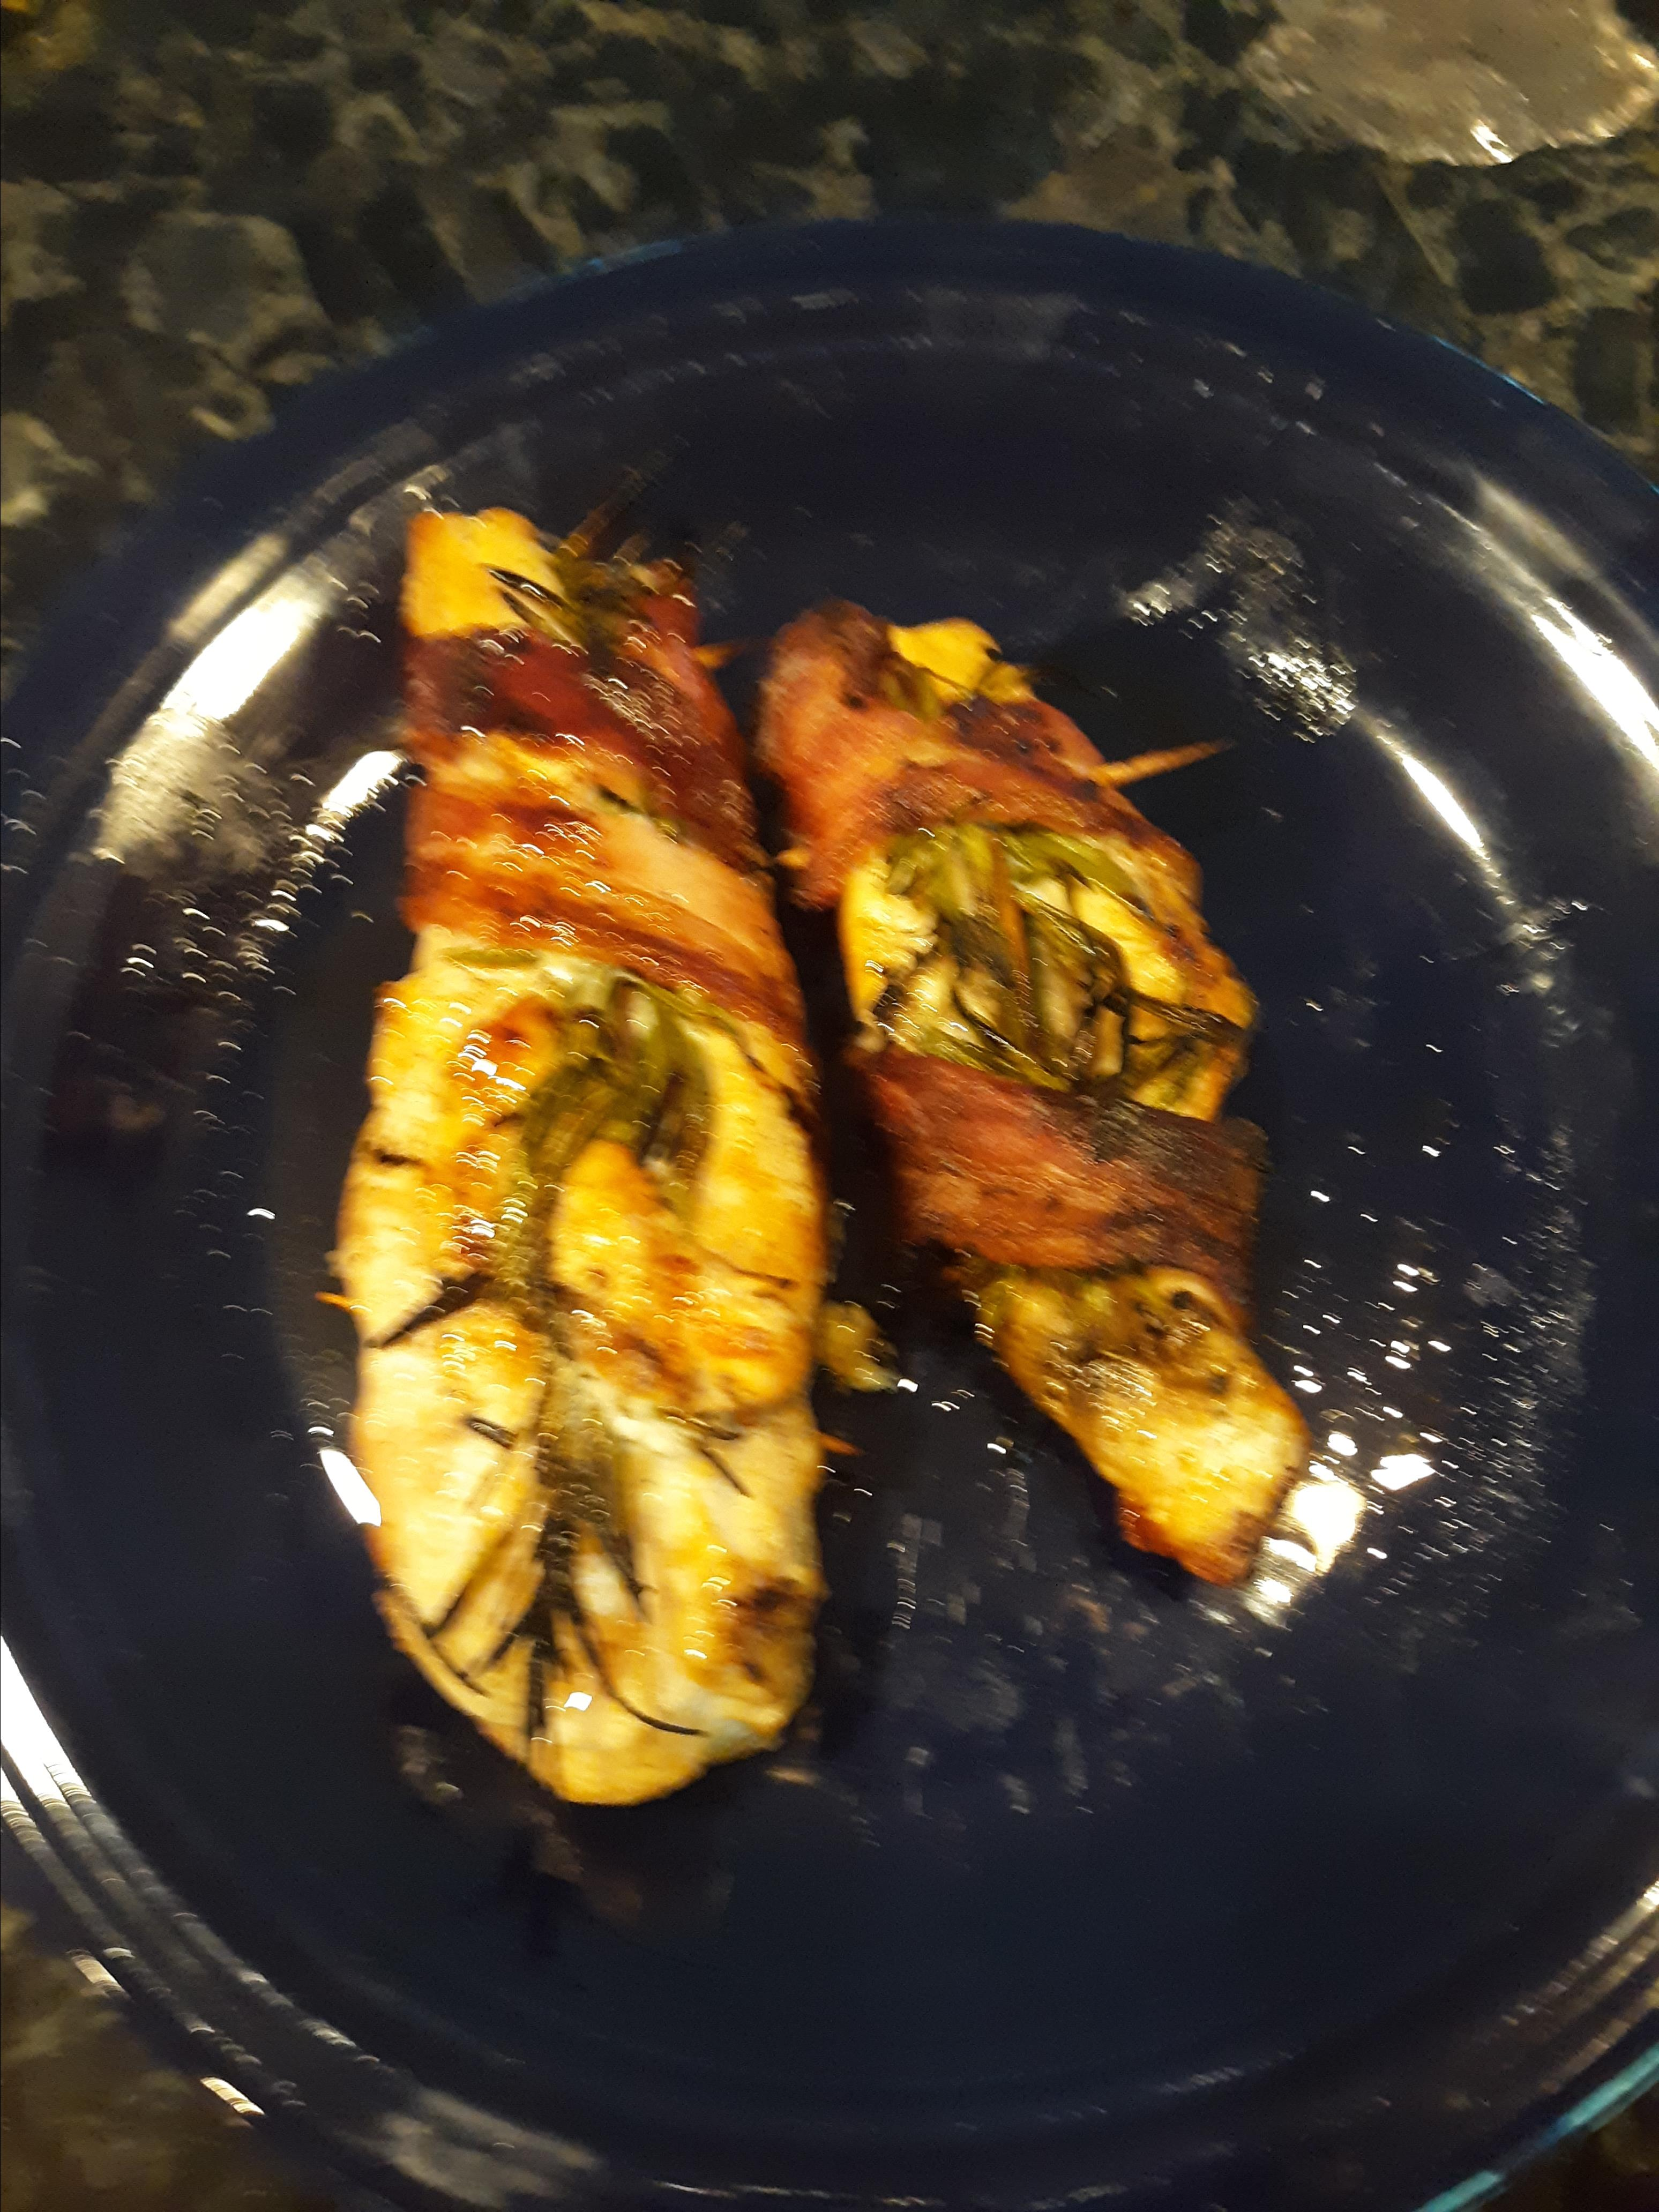 Grilled Chicken with Rosemary and Bacon fqpete